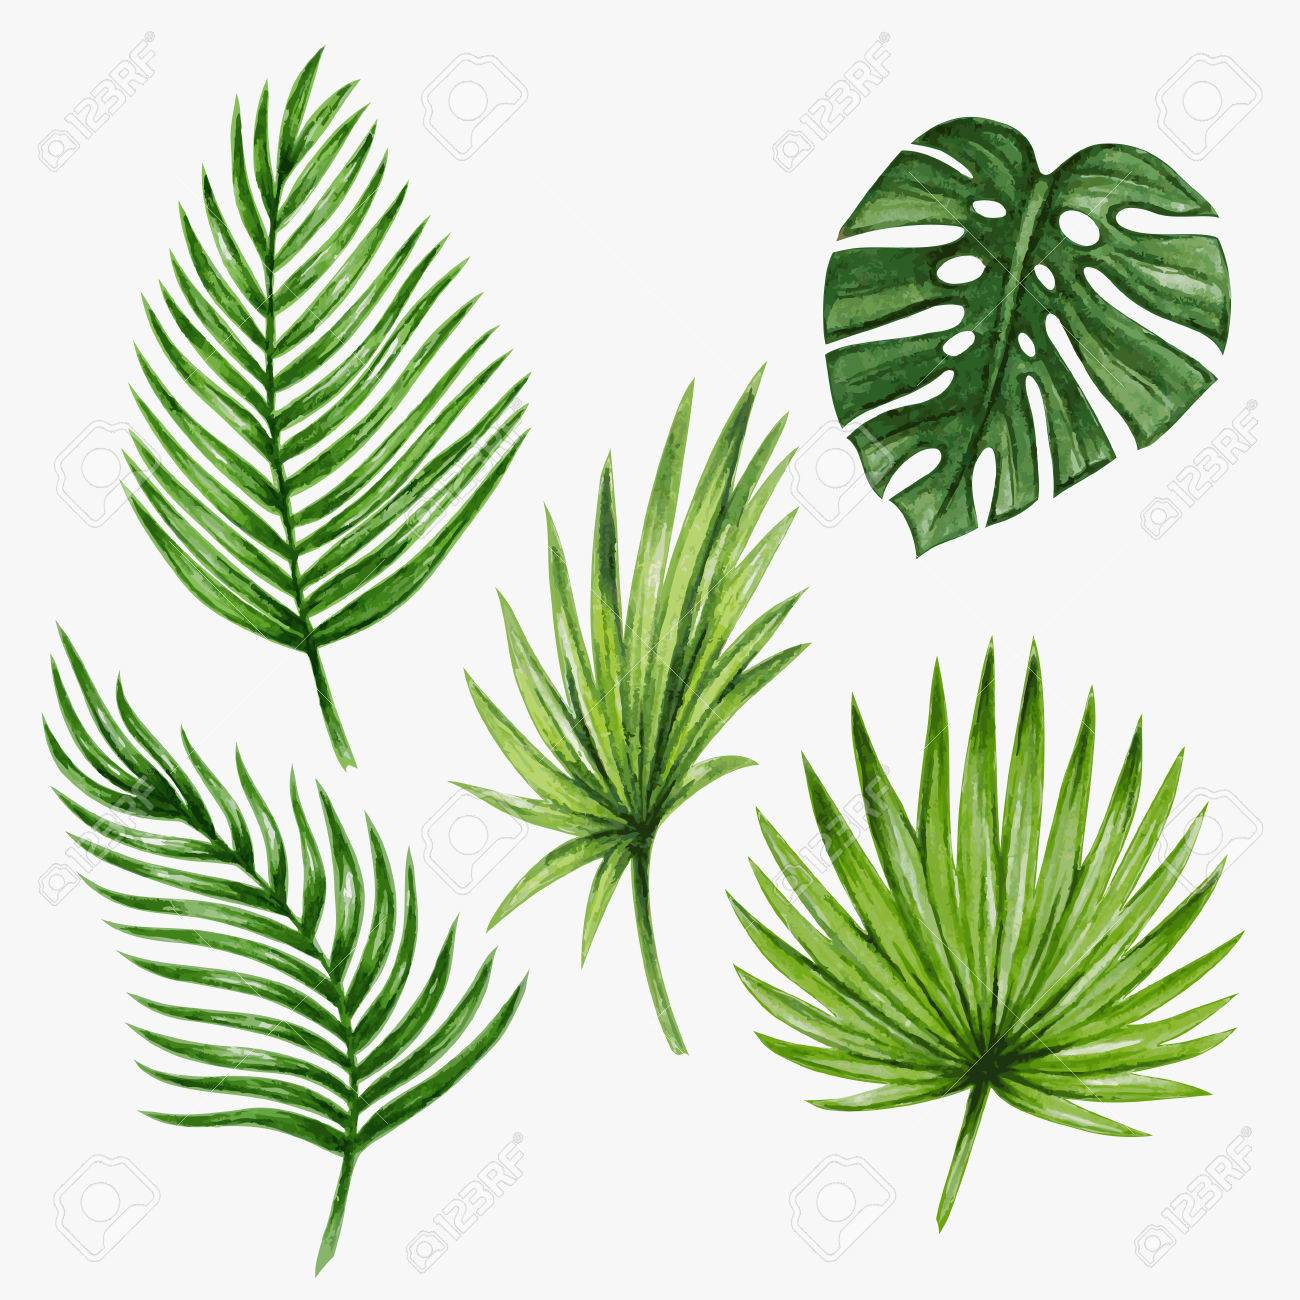 Watercolor tropical palm leaves. Vector illustration. - 62670190